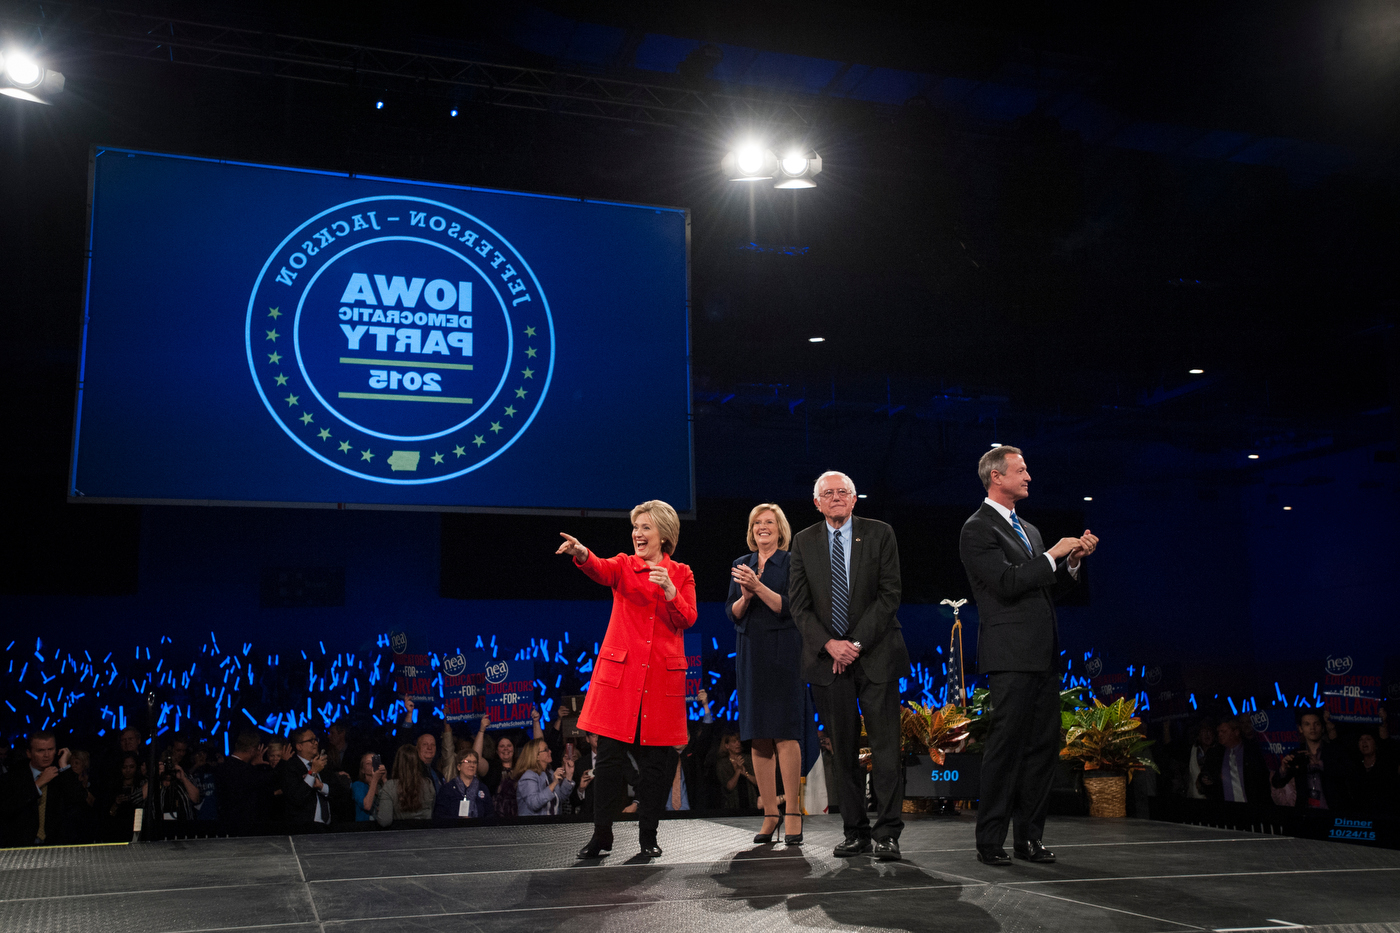 From left, Hillary Clinton, Iowa Democratic Chairwoman Dr. Andy McGuire, Bernie Sanders, and Martin O'Malley, greet the crowd at the Jefferson-Jackson Dinner in Des Moines, Iowa.